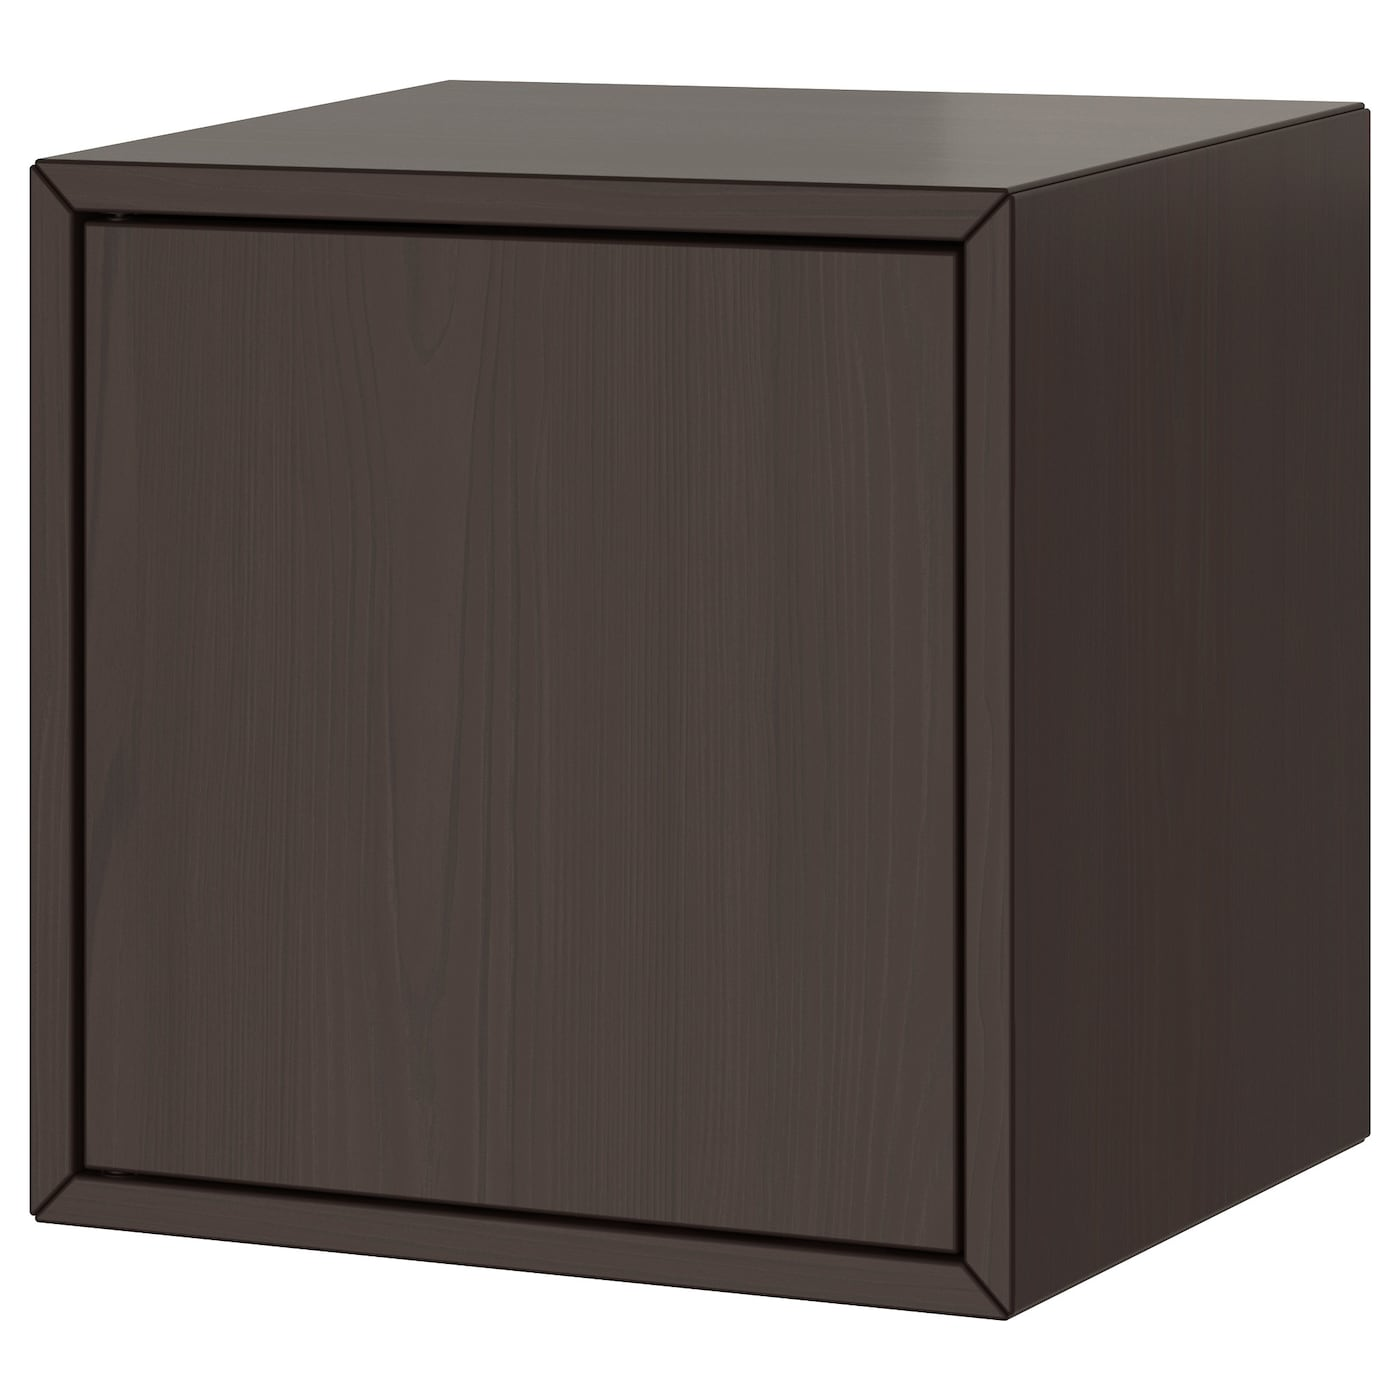 wandregal metall schwarz wandregal aus metall b 50 x h 16 x t 8cm schwarz depot de wandregal. Black Bedroom Furniture Sets. Home Design Ideas